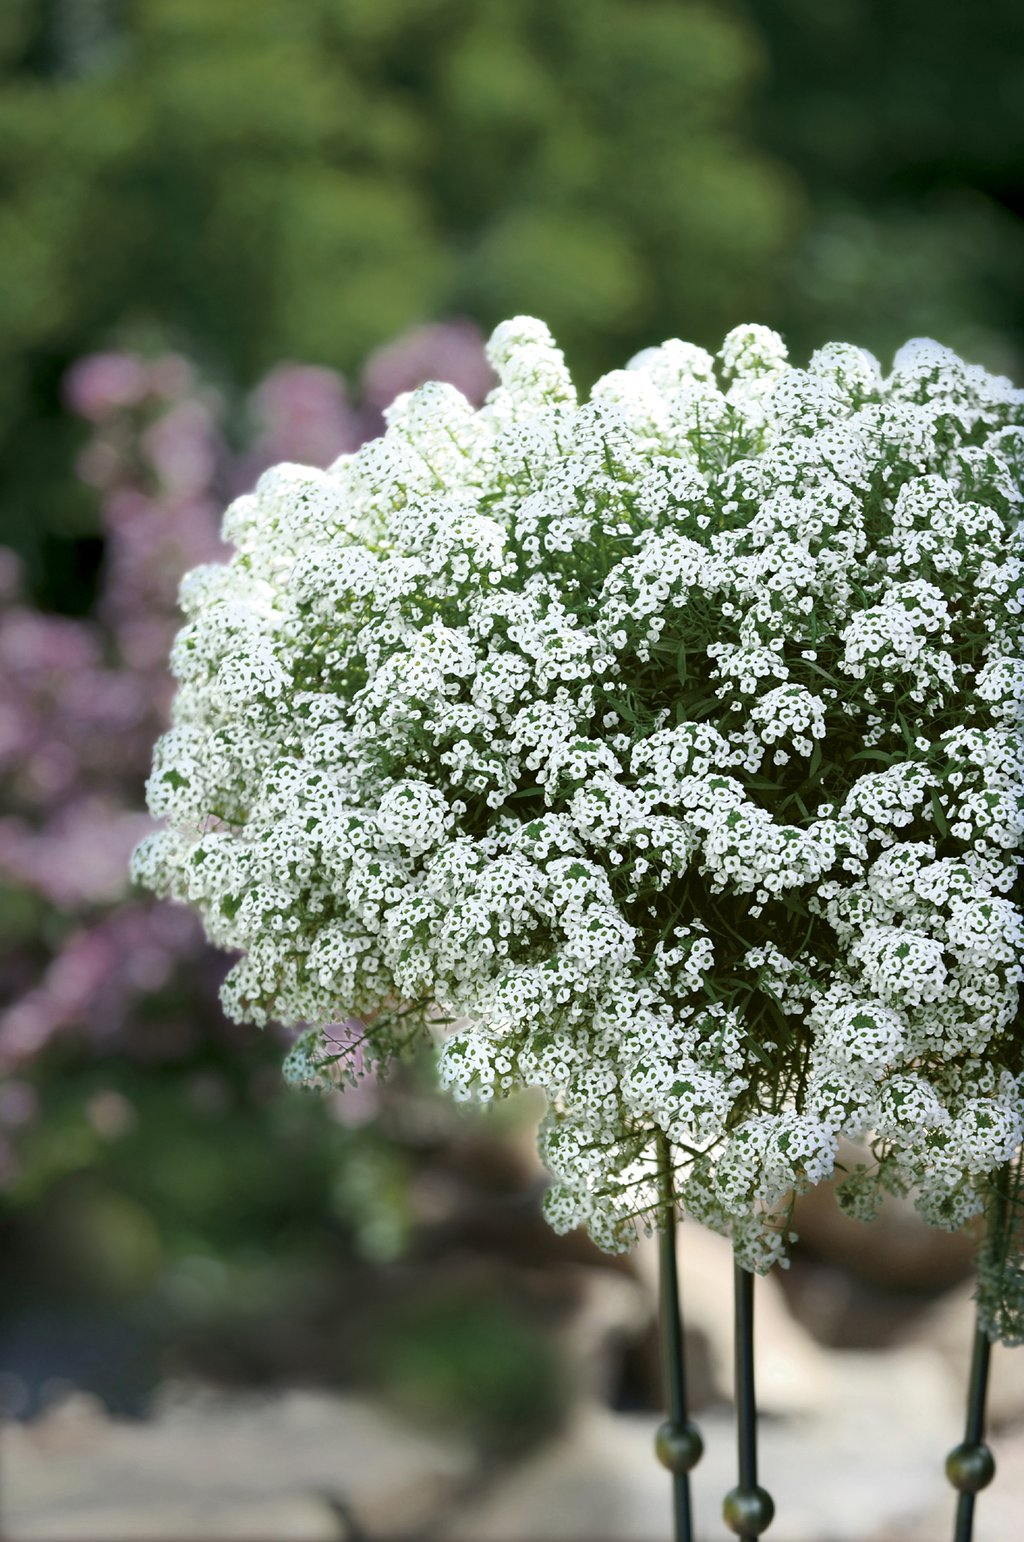 snow princess sweet alyssum lobularia hybrid images. Black Bedroom Furniture Sets. Home Design Ideas